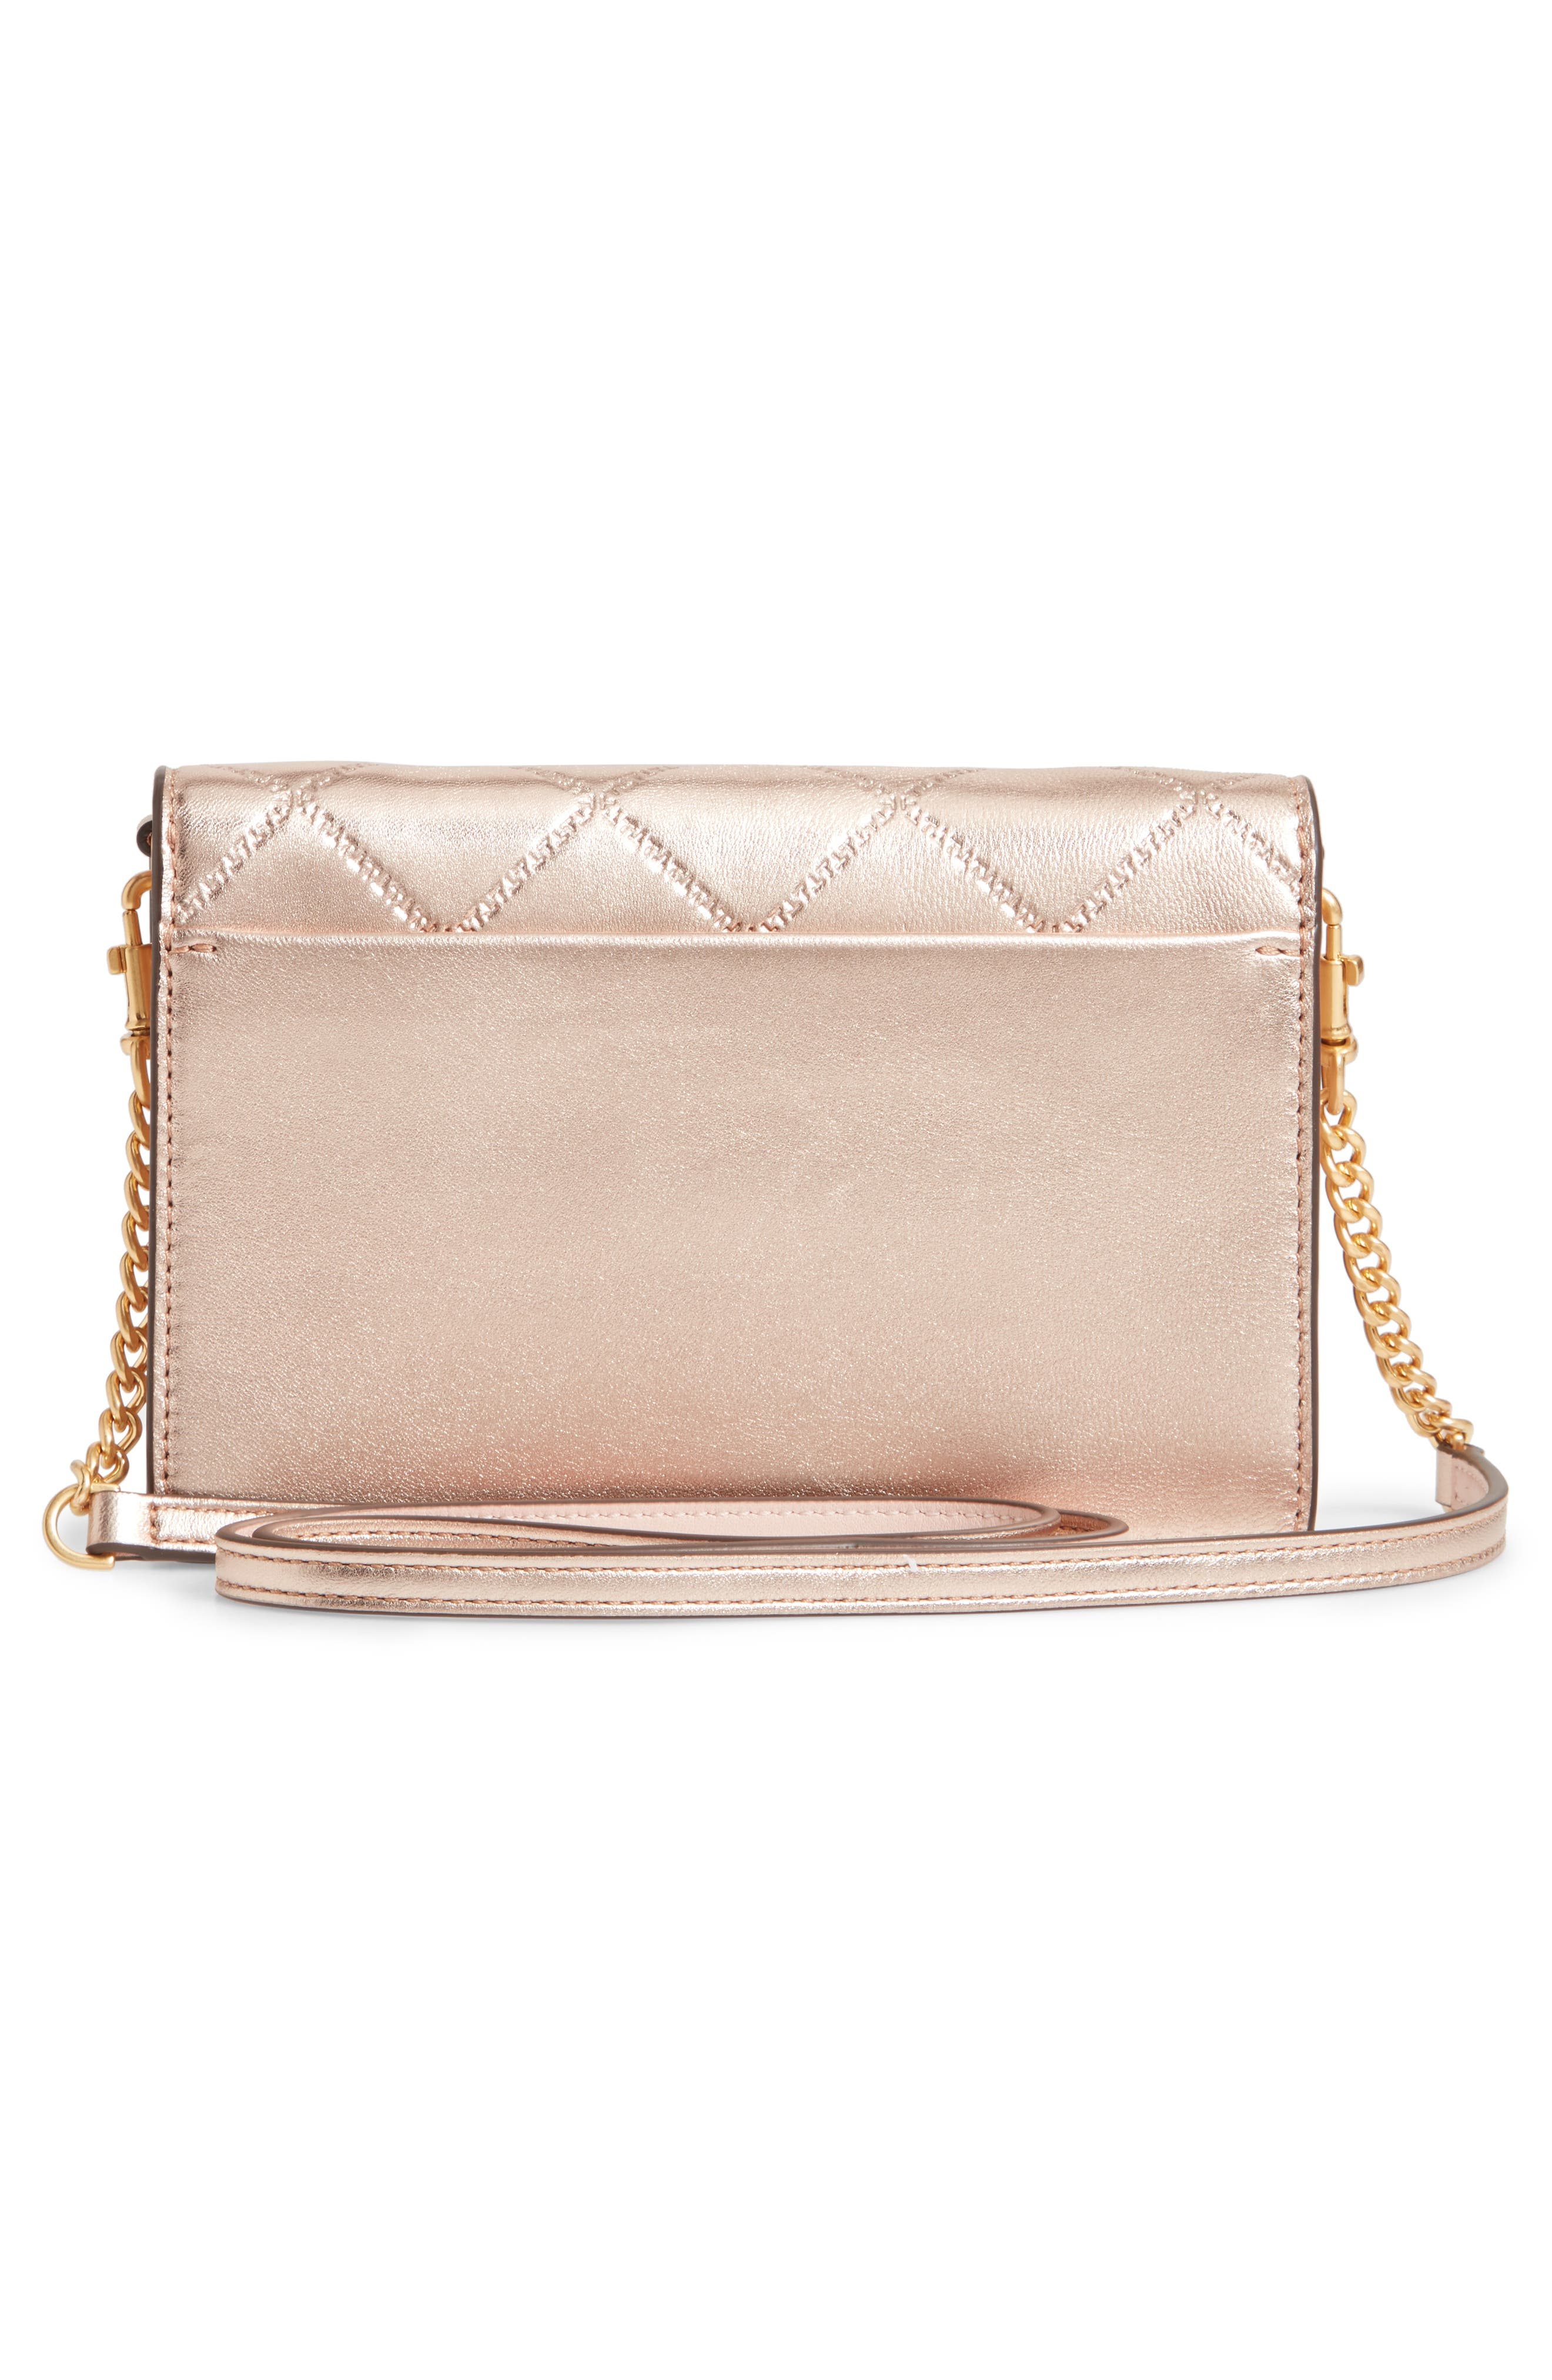 TORY BURCH,                             Mini Georgia Quilted Metallic Leather Shoulder Bag,                             Alternate thumbnail 3, color,                             650